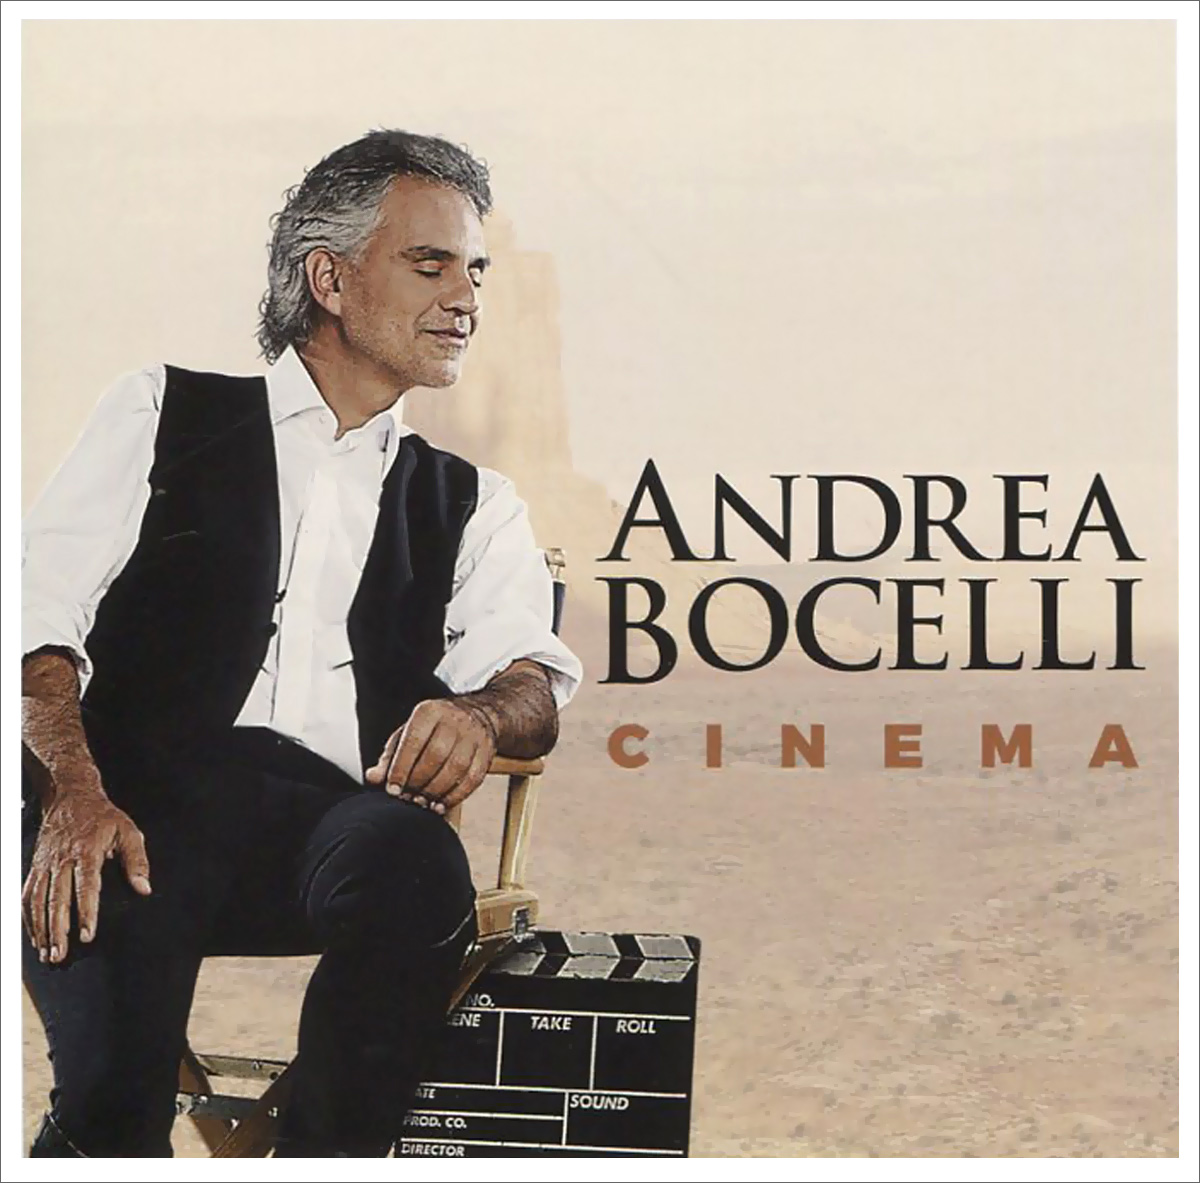 Андреа Бочелли Andrea Bocelli. Cinema андреа бочелли andrea bocelli the complete pop albums 16 cd